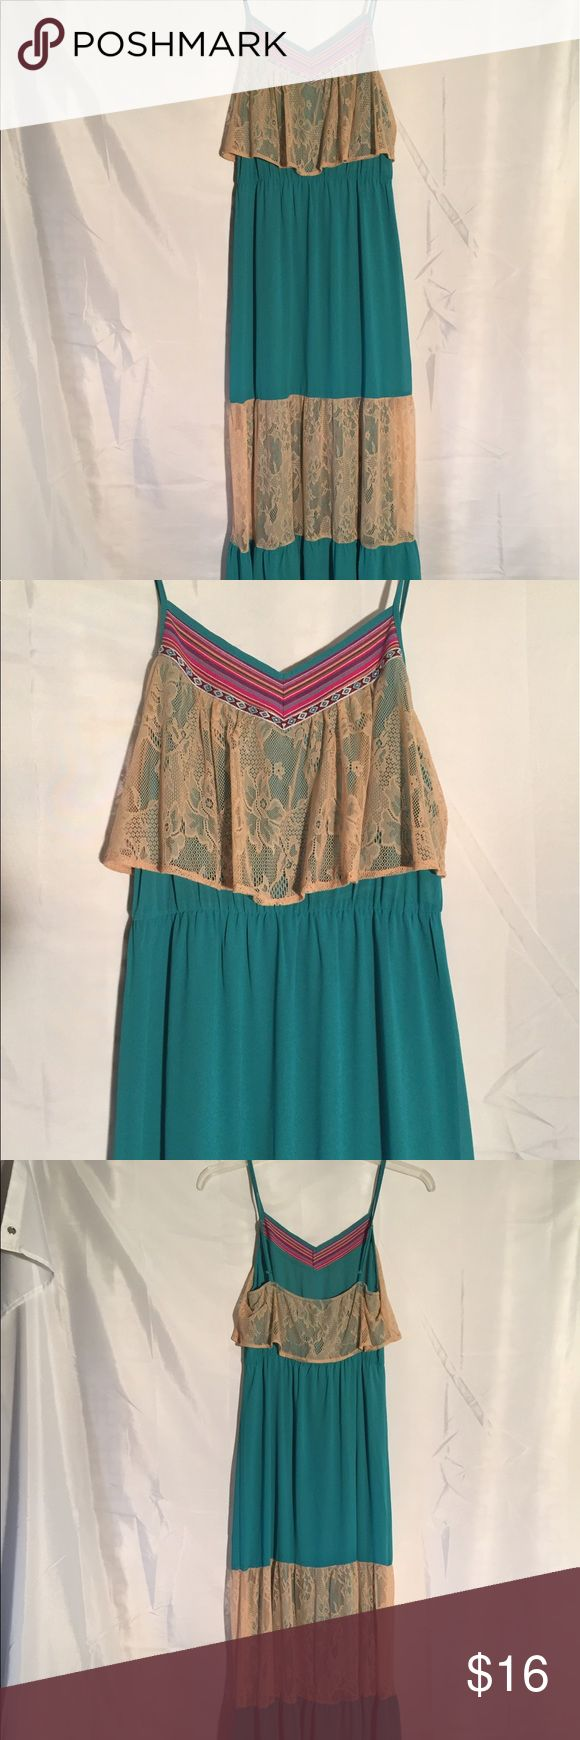 Flying Tomato teal maxi dress size M Flying Tomato teal maxi dress size M.   100% Polyester Flying Tomato Dresses Maxi